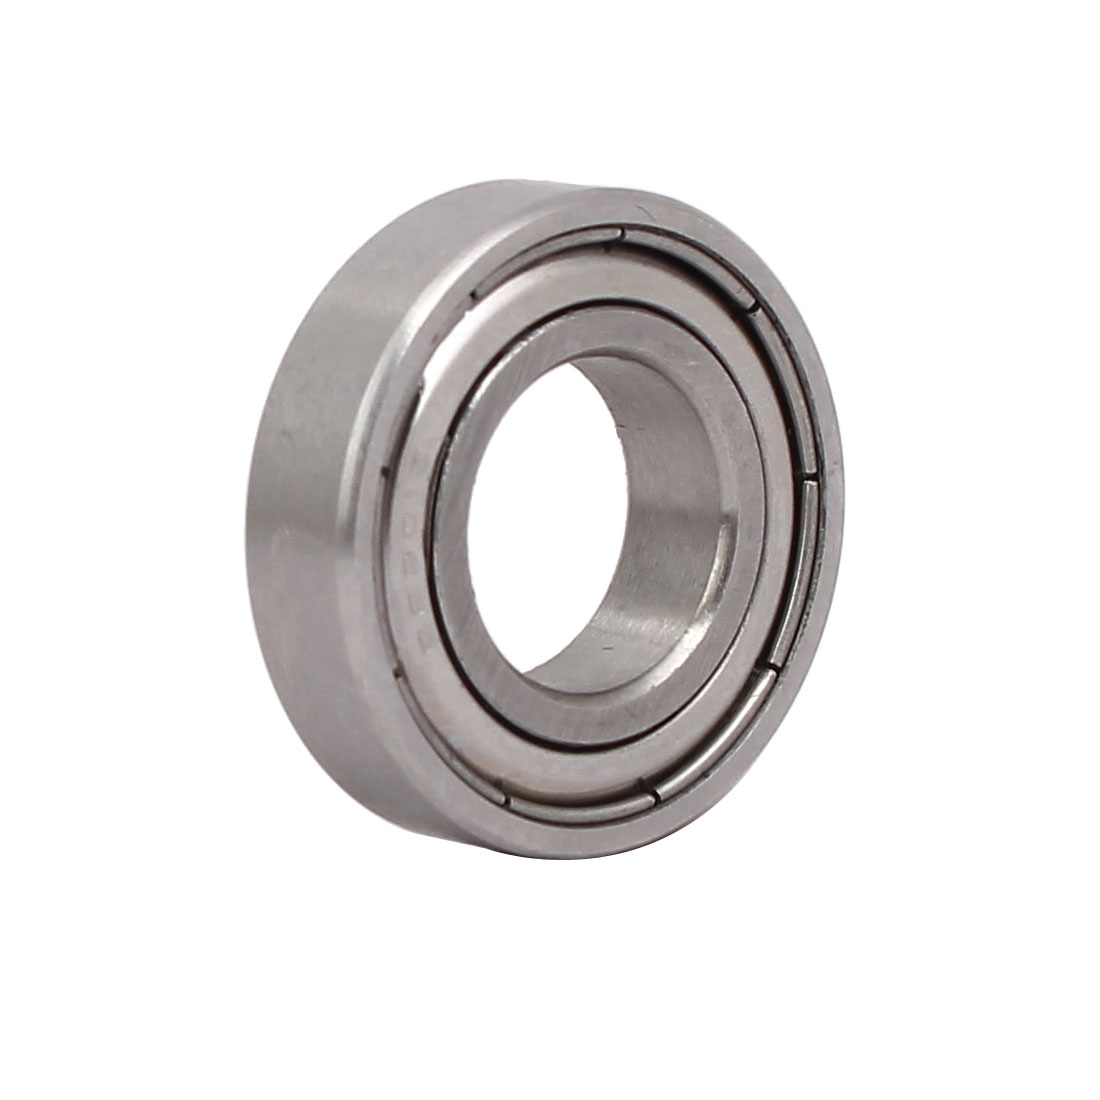 24mmx12mmx6mm 6901 Stainless Steel Shielded Deep Groove Radial Ball Bearing